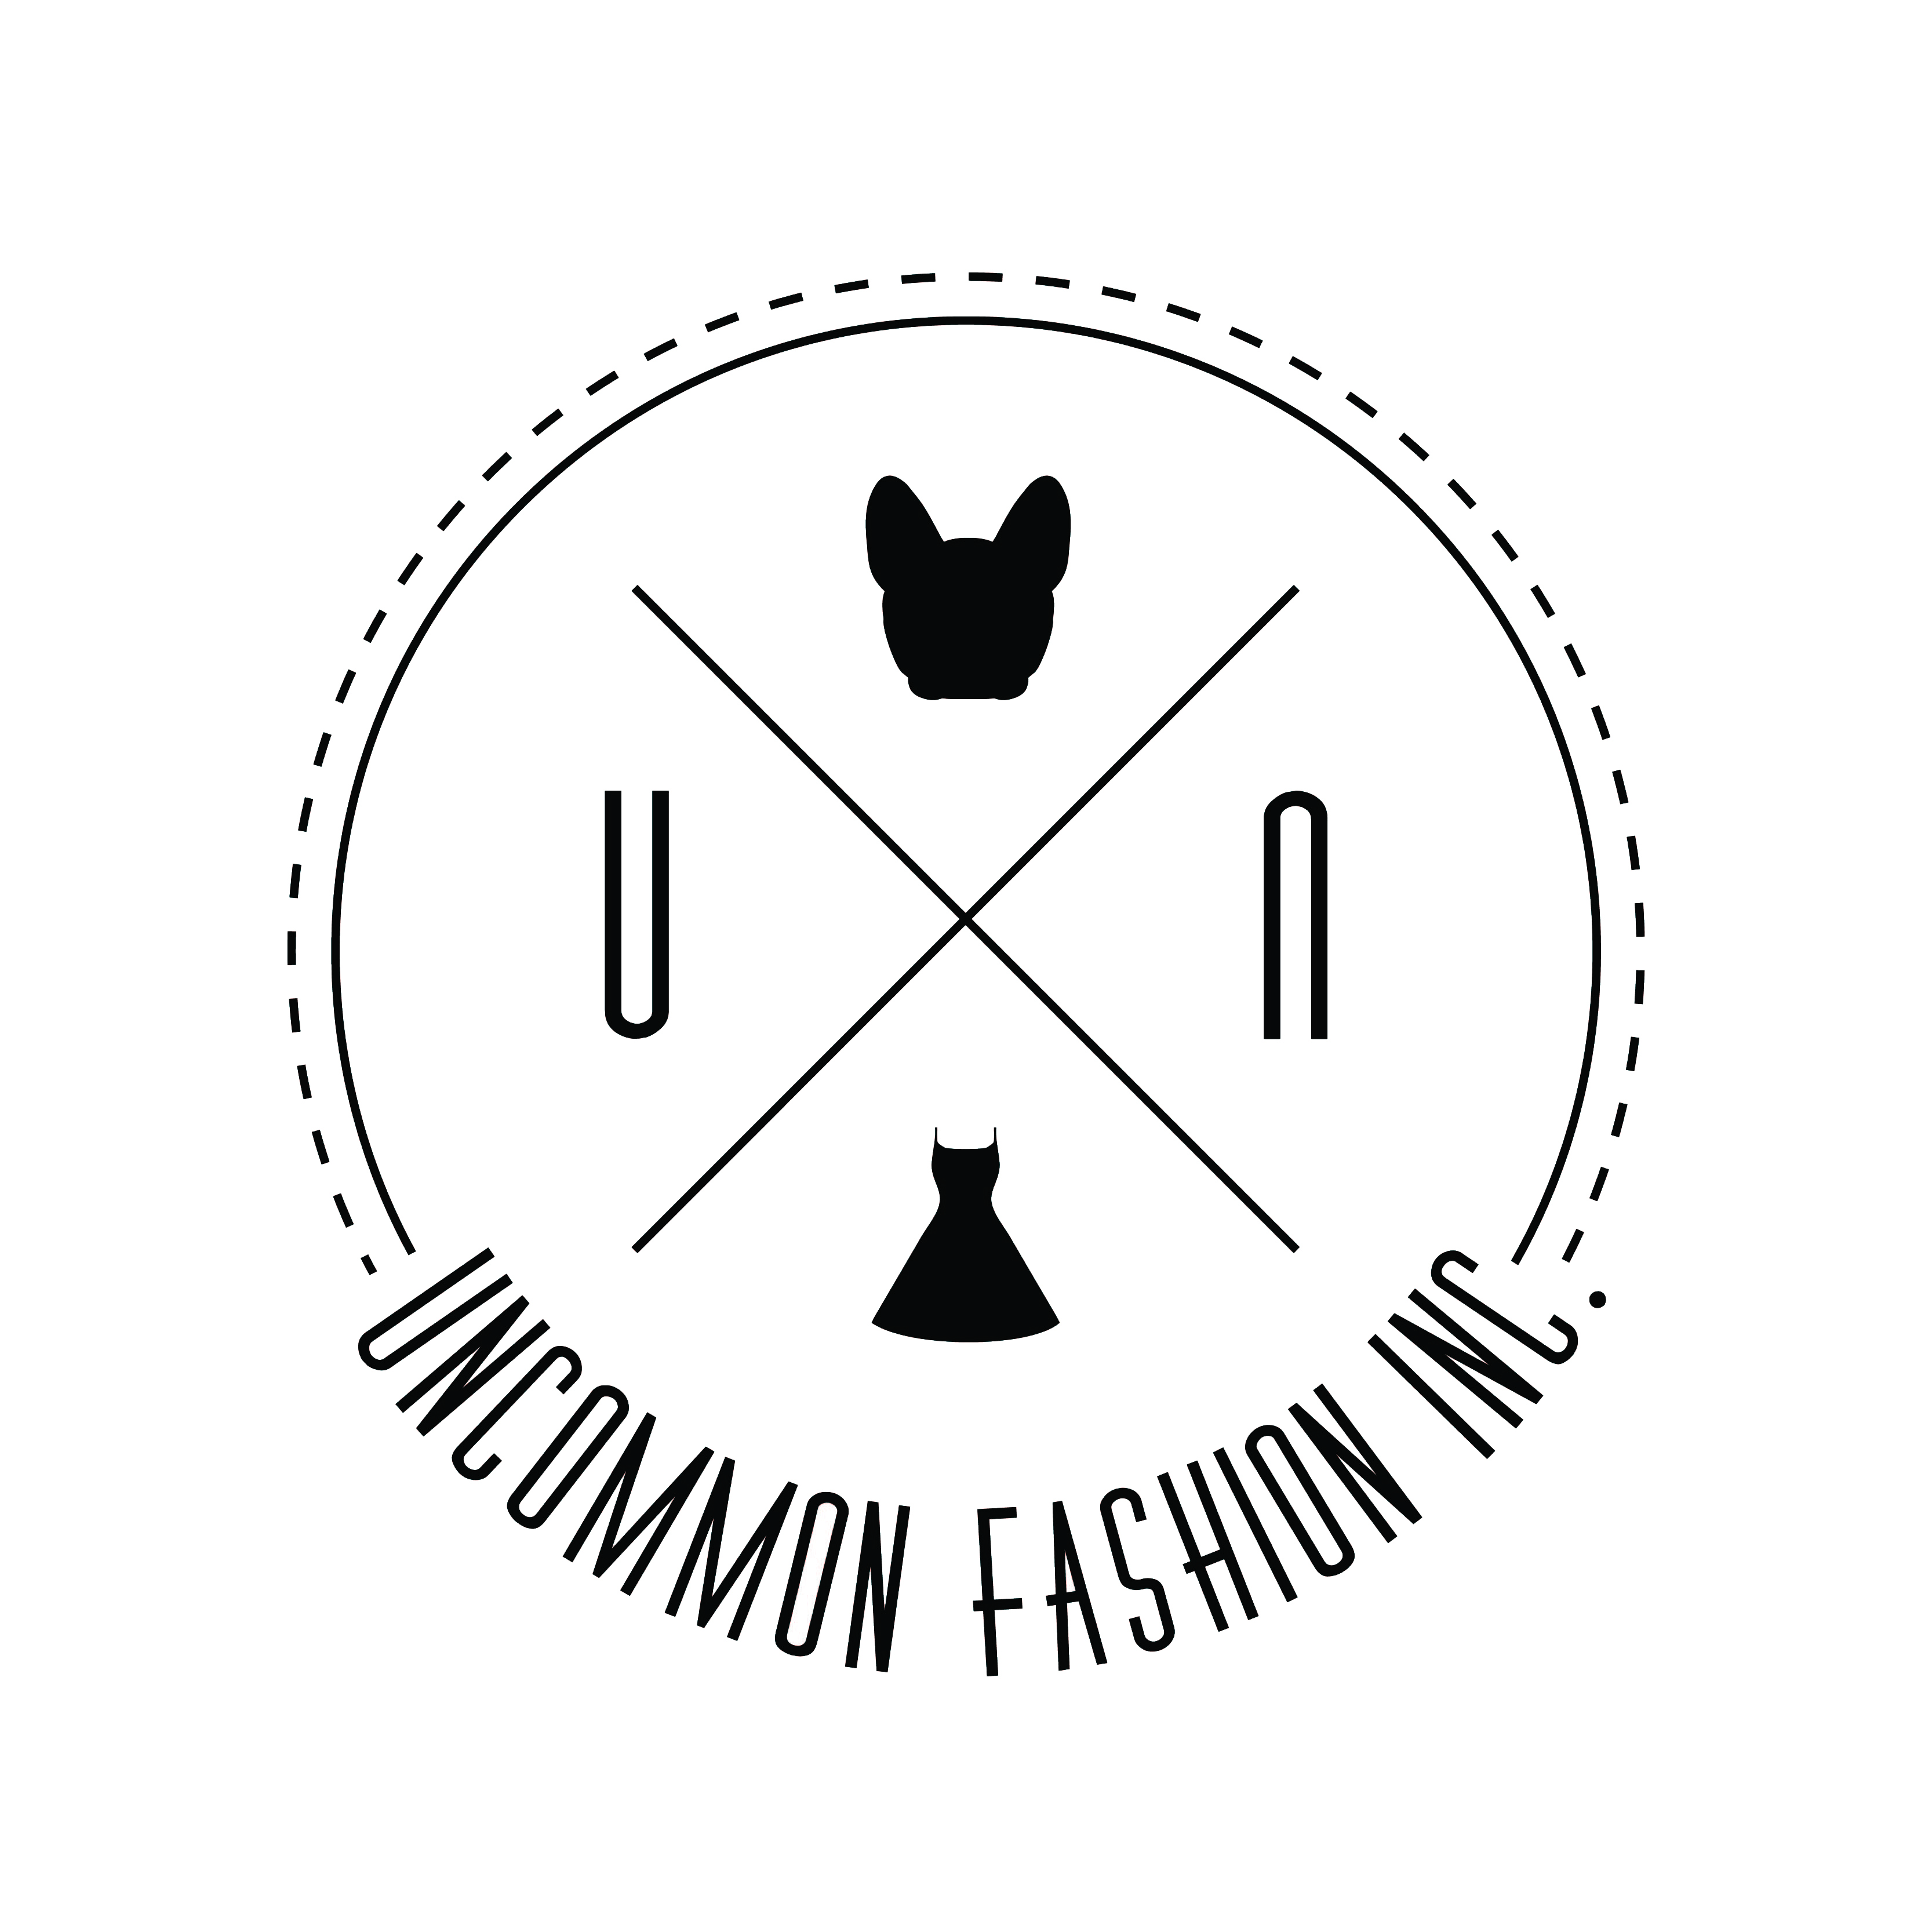 Uncommon Fashion Inc